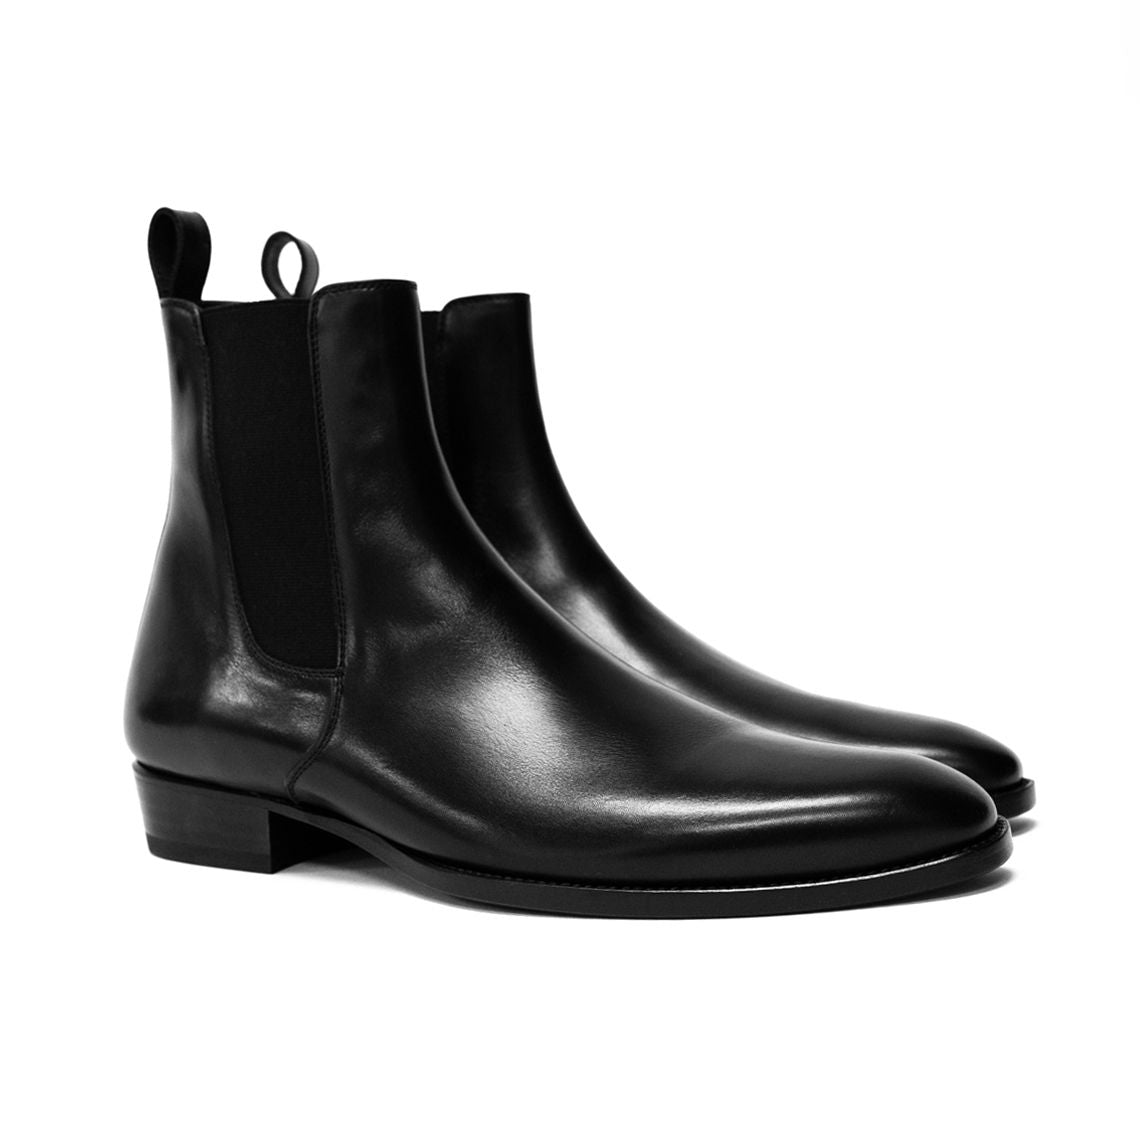 THE LEATHER GRANADA CHELSEA BOOTS